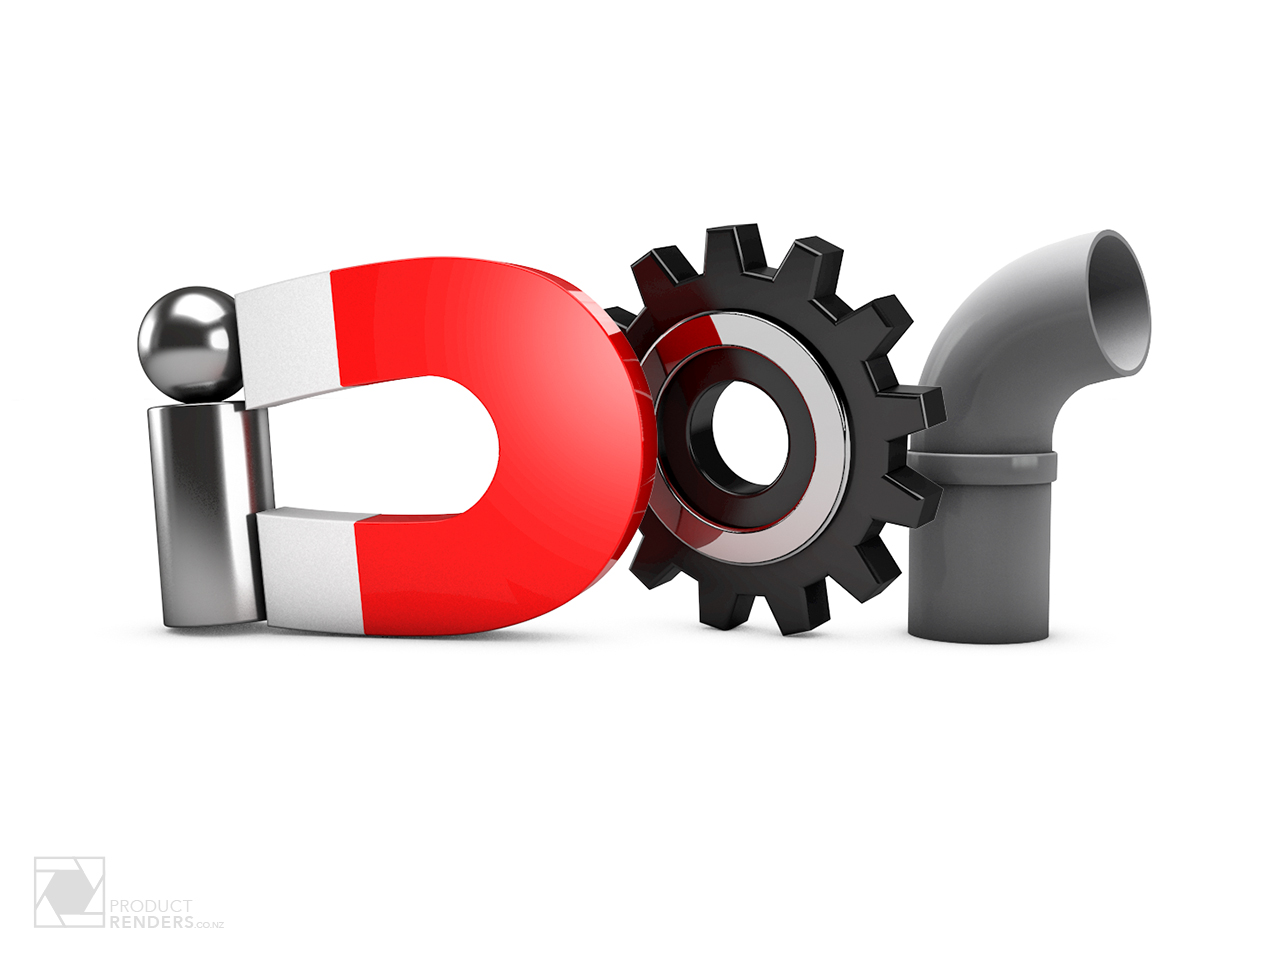 3D render of the logo for iDor Interactive